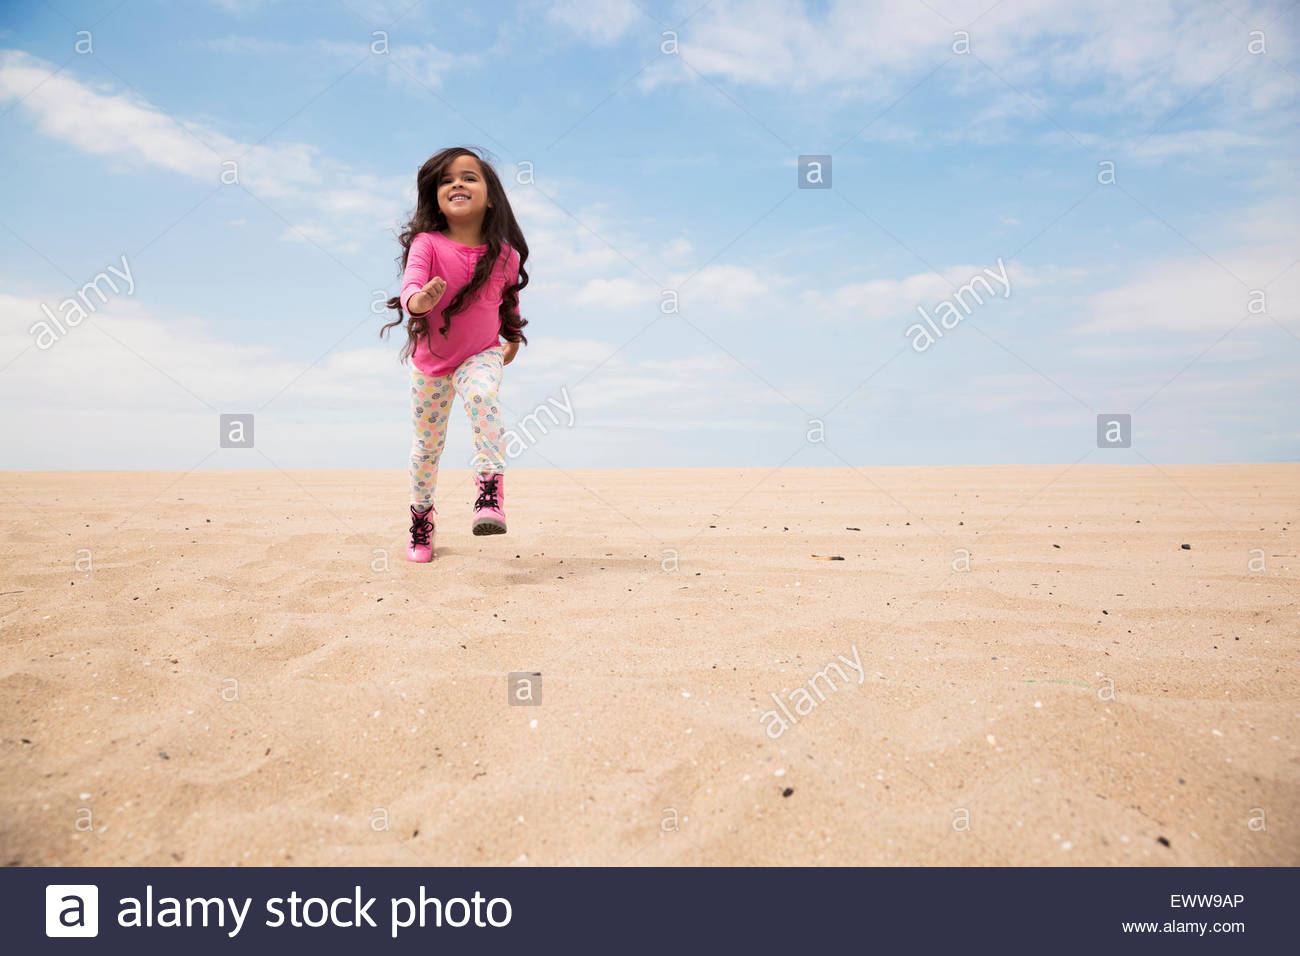 Smiling girl long hair running on beach slope - Stock Image